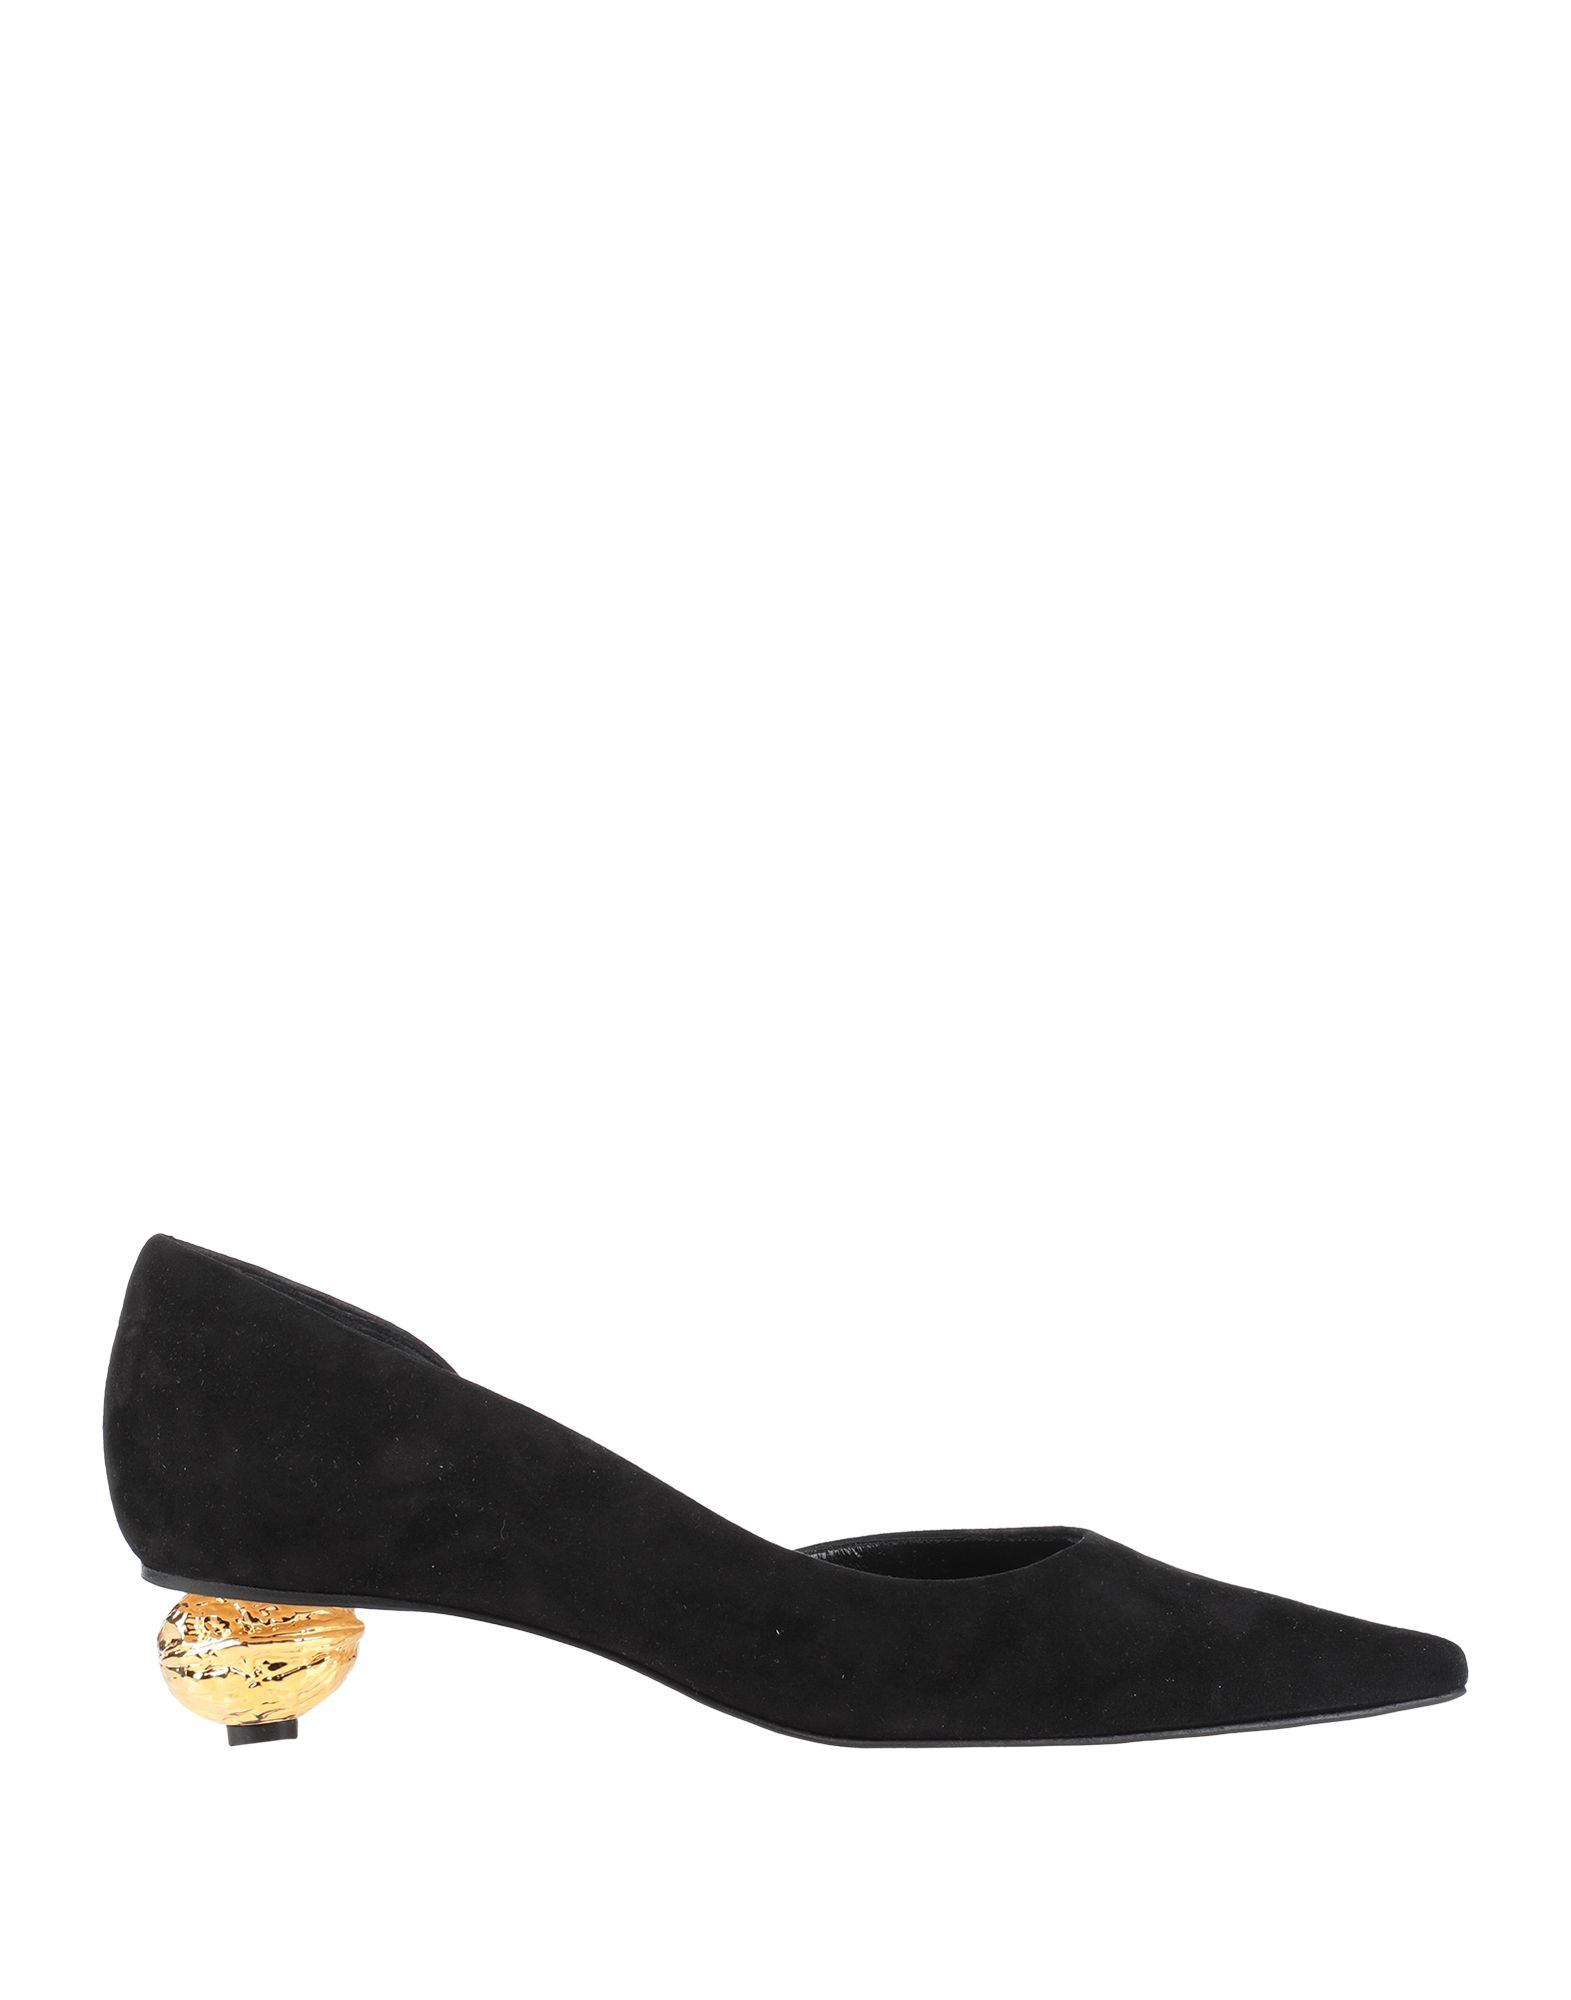 LOEWE Pumps. suede effect, no appliqués, solid color, narrow toeline, sculpted heel, leather lining, leather sole, contains non-textile parts of animal origin. Soft Leather